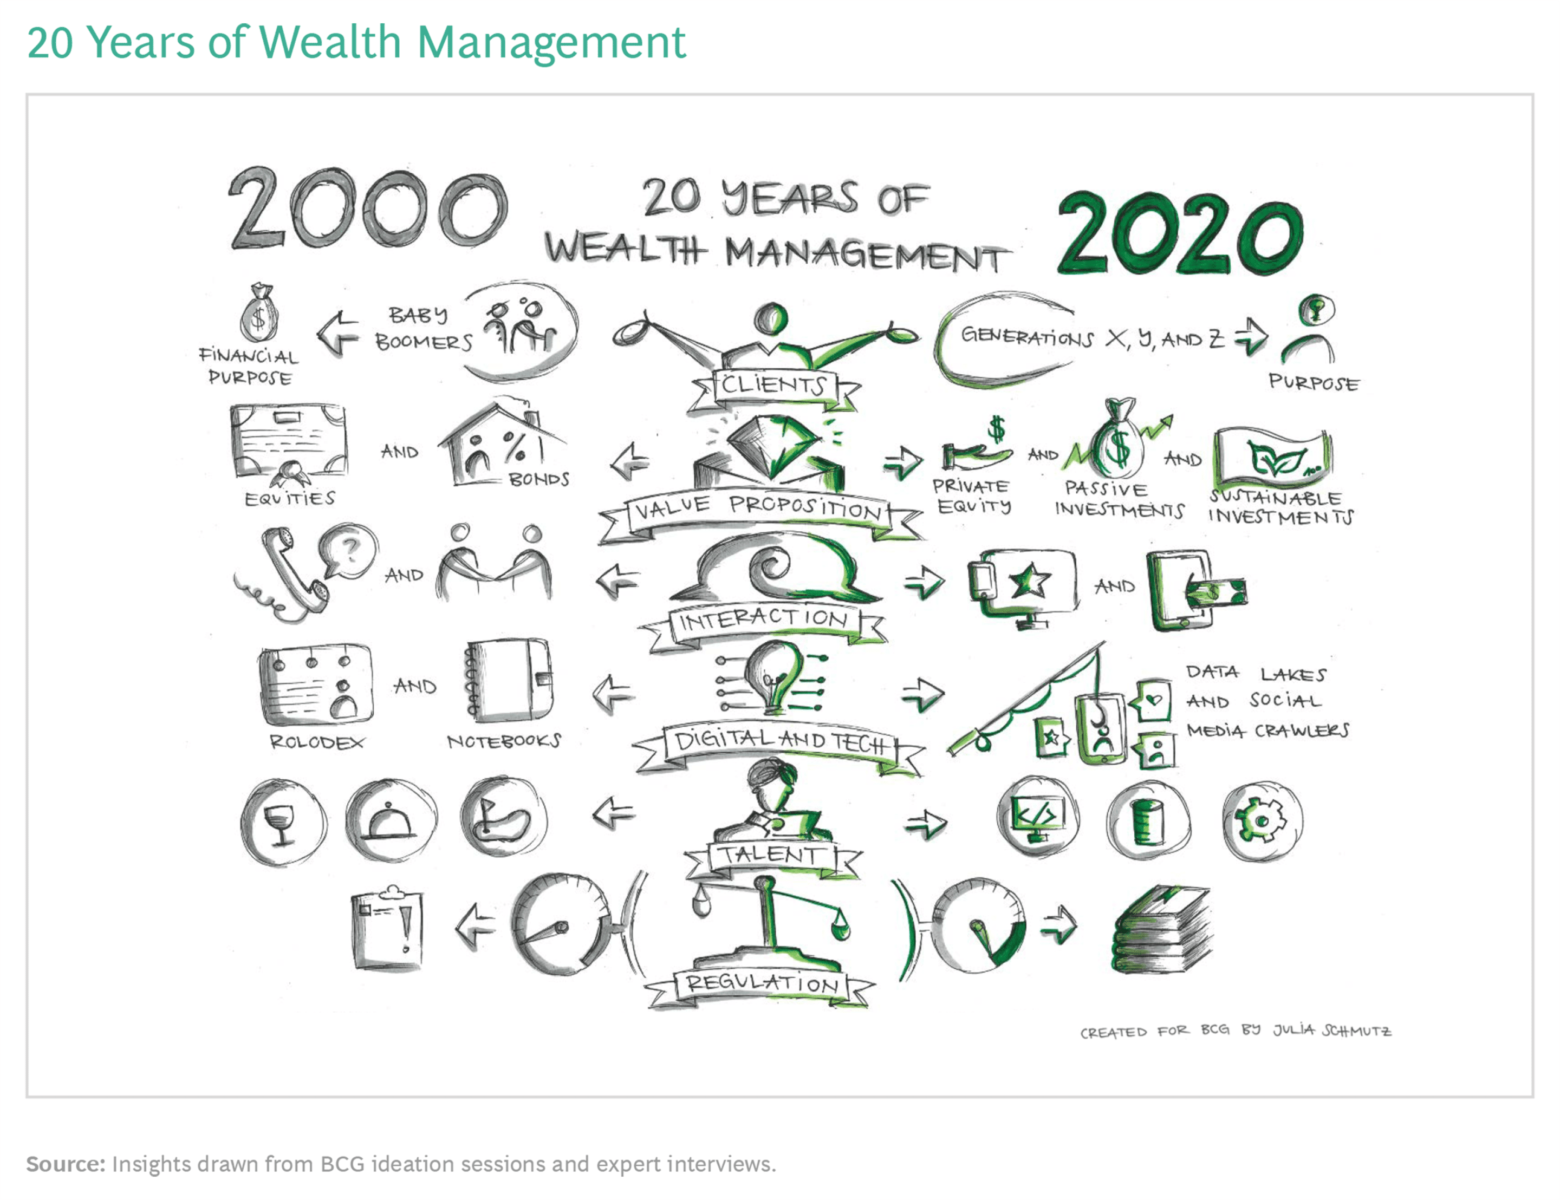 Global Wealth 2020: The Future of Wealth Management 3